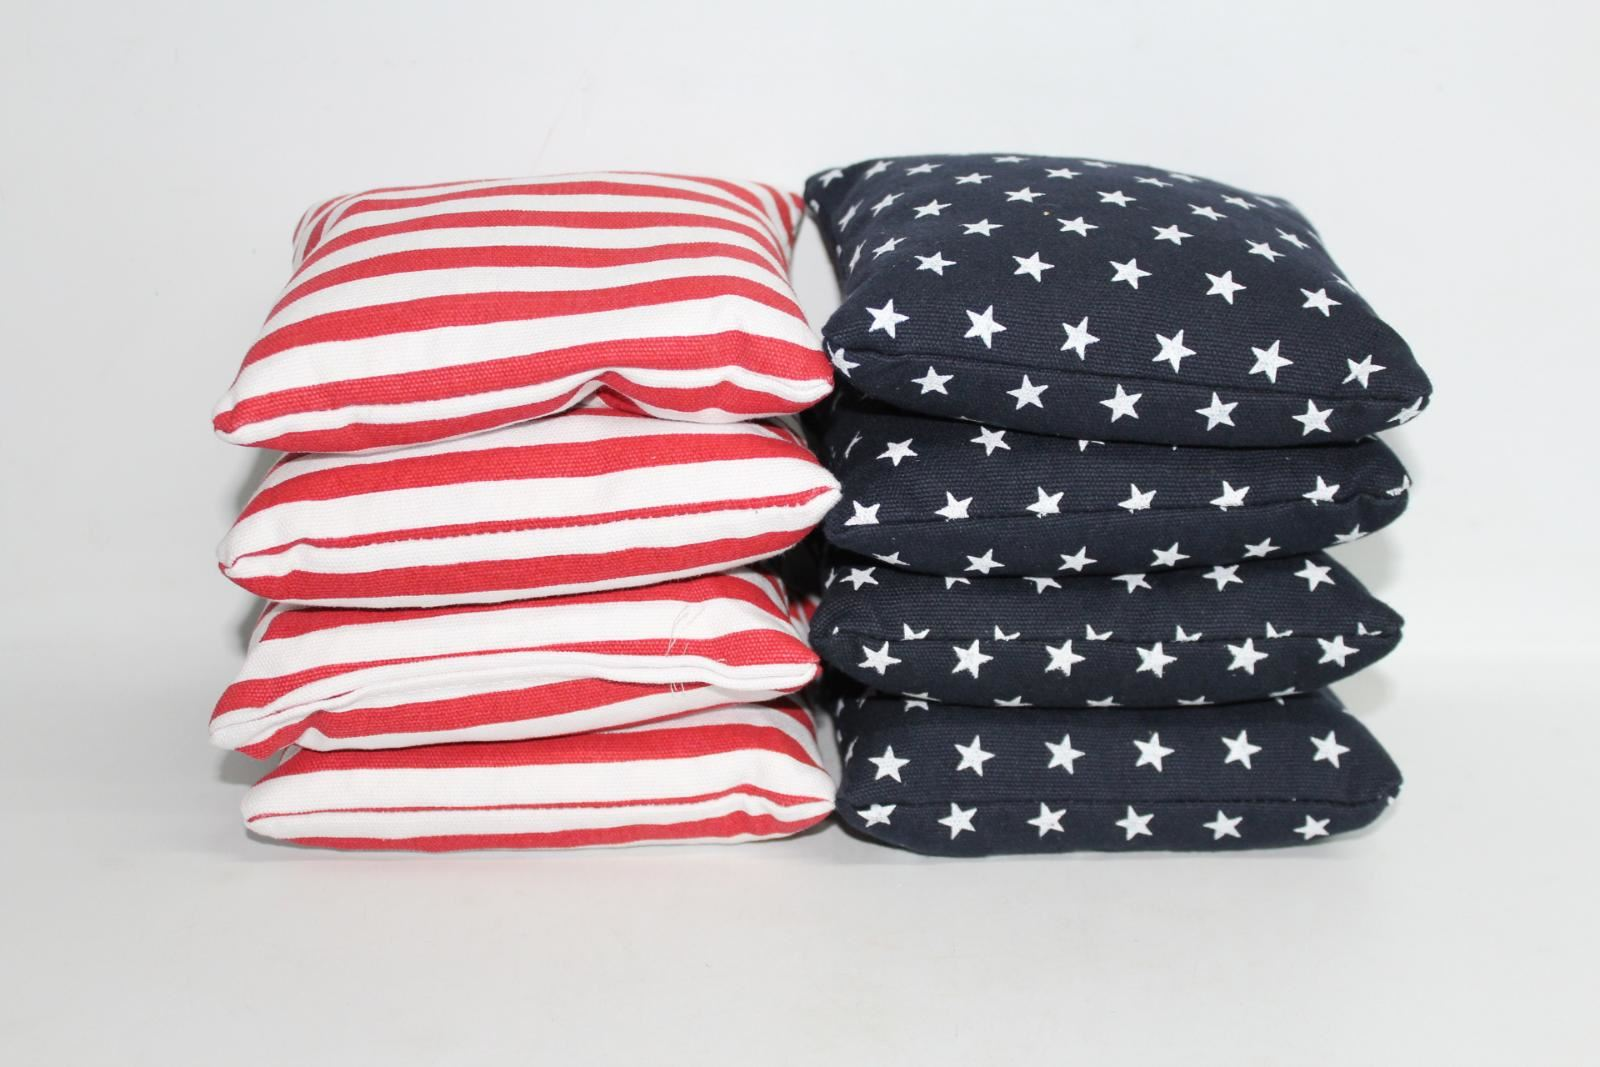 Stars-amp-Stripes-American-Flag-Corn-Bags-For-Sports-amp-School-P-E-Pack-Of-8